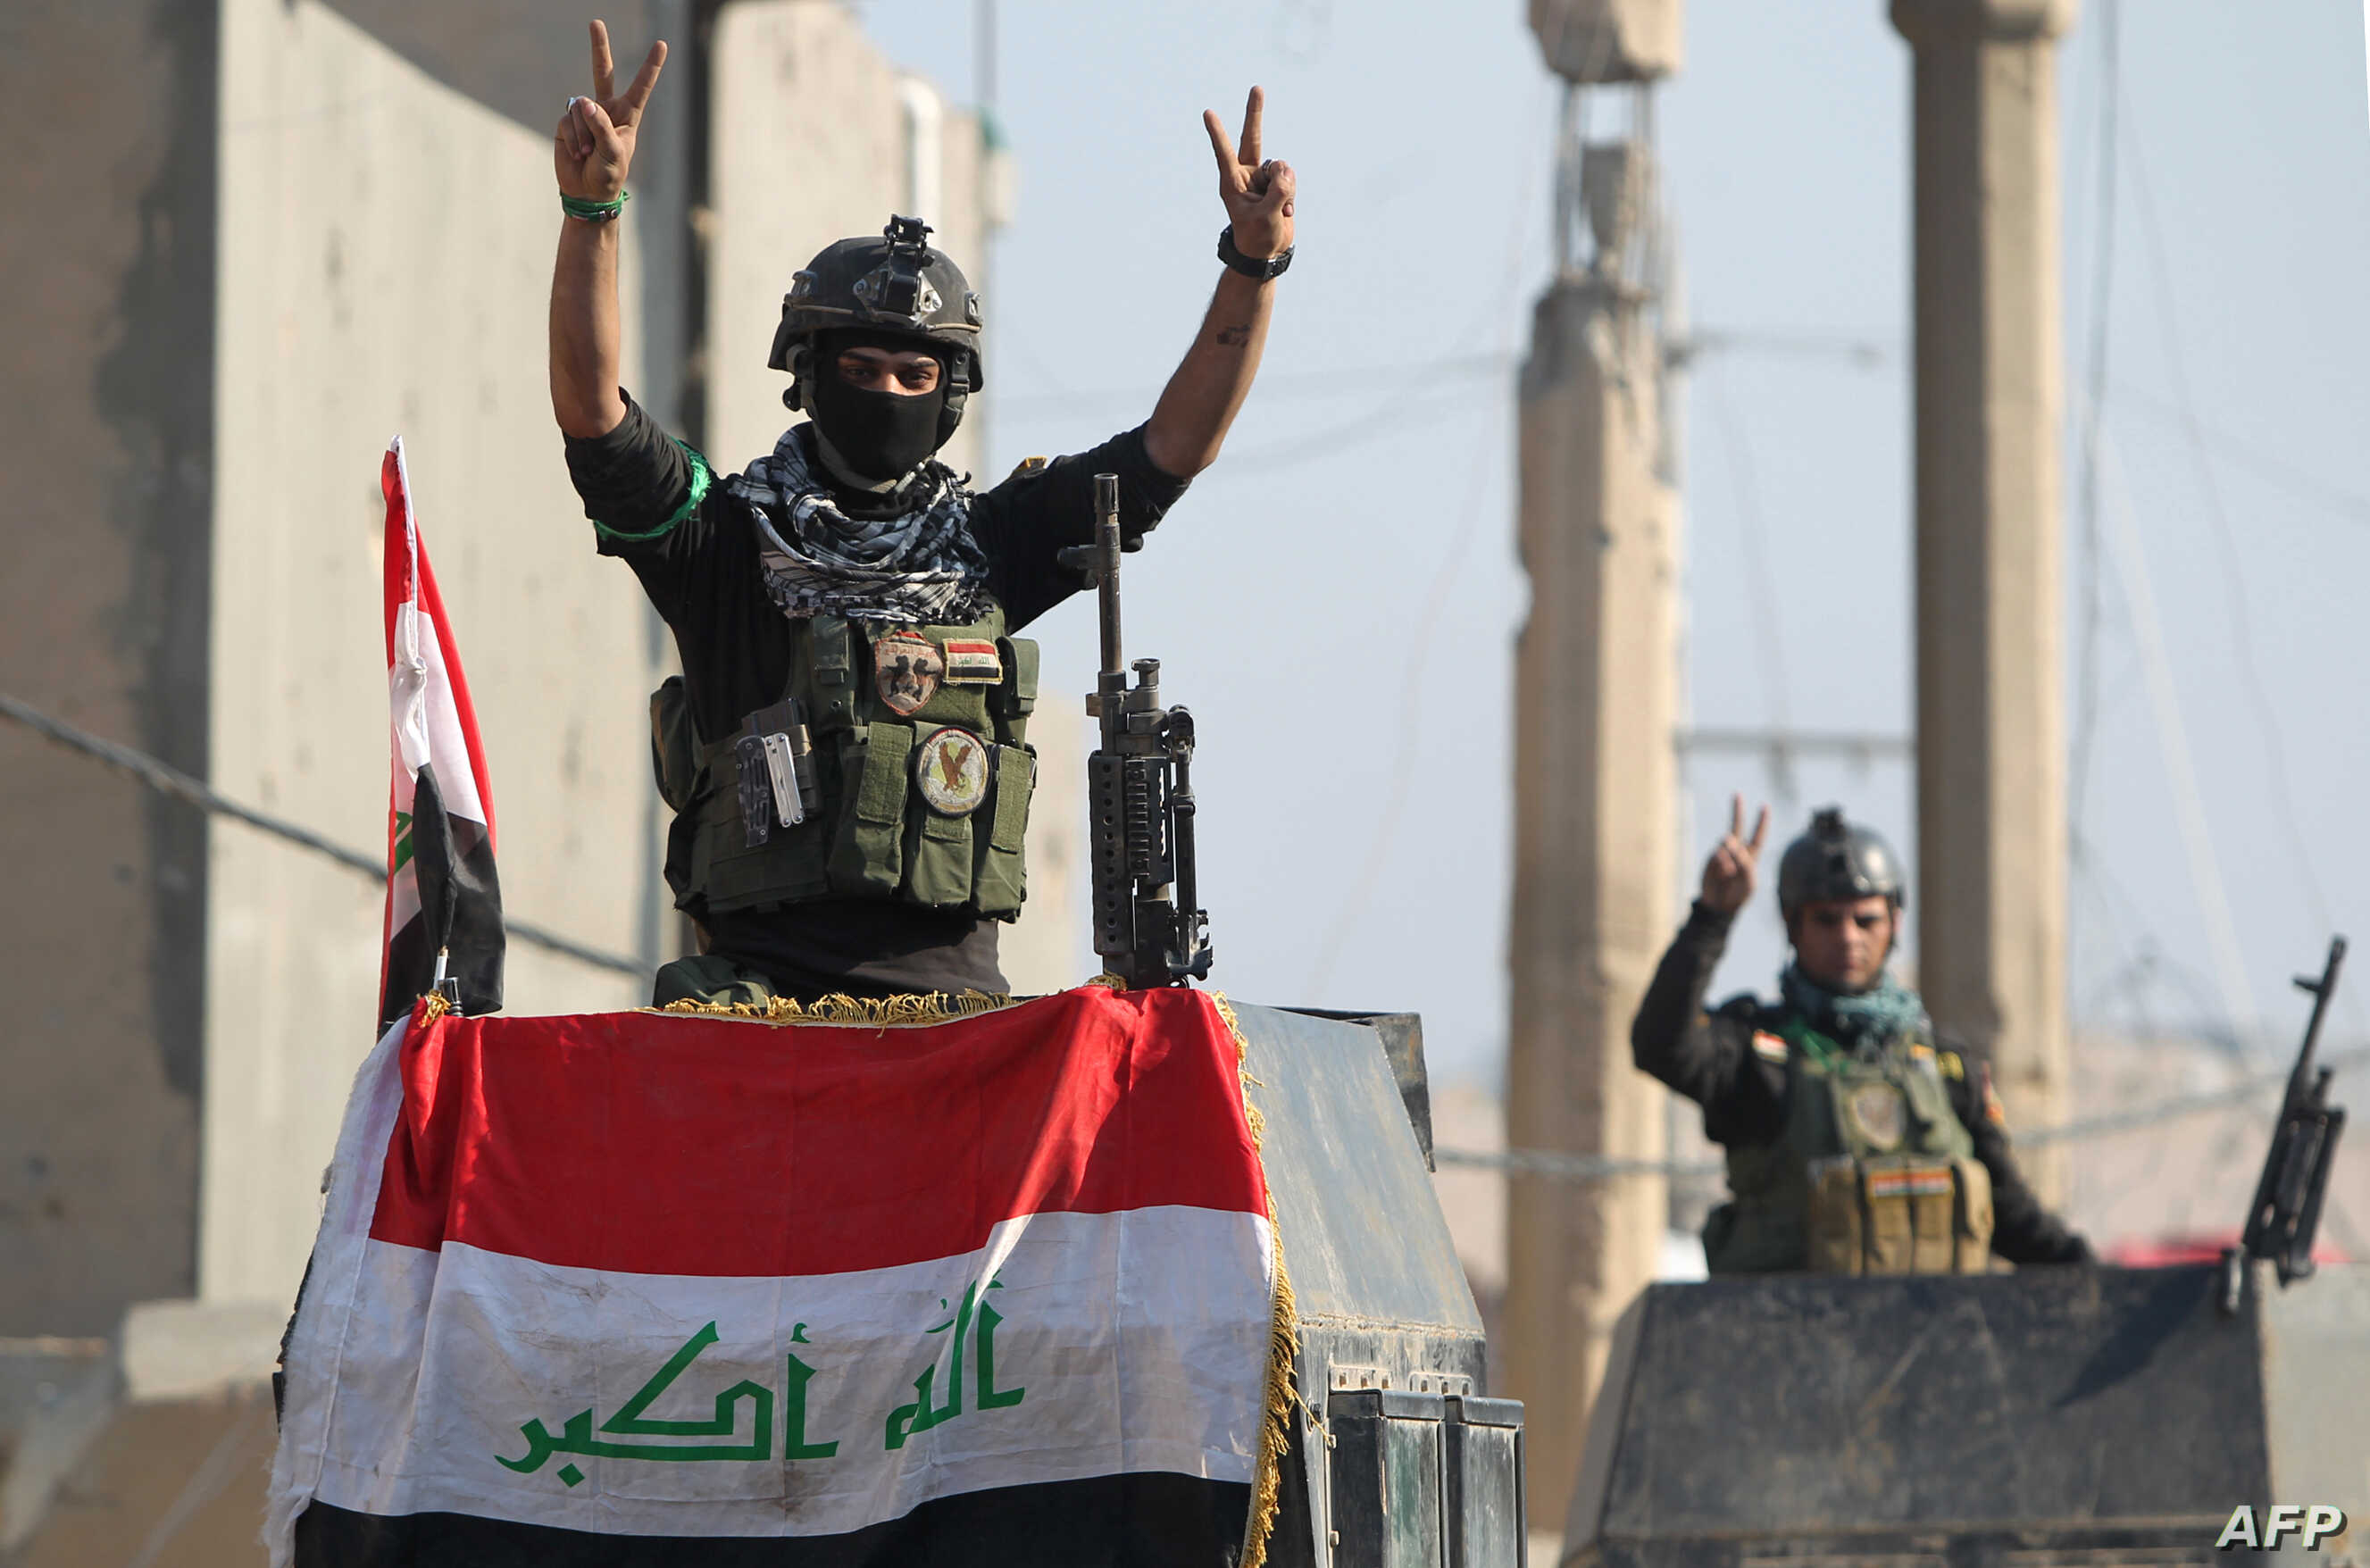 """Members of Iraq's elite counter-terrorism service flash the """"V"""" for victory sign, Dec. 29, 2015 in the city of Ramadi, the capital of Iraq's Anbar province, about 110 kilometers west of Baghdad, after Iraqi forces recaptured it from the Islamic State..."""